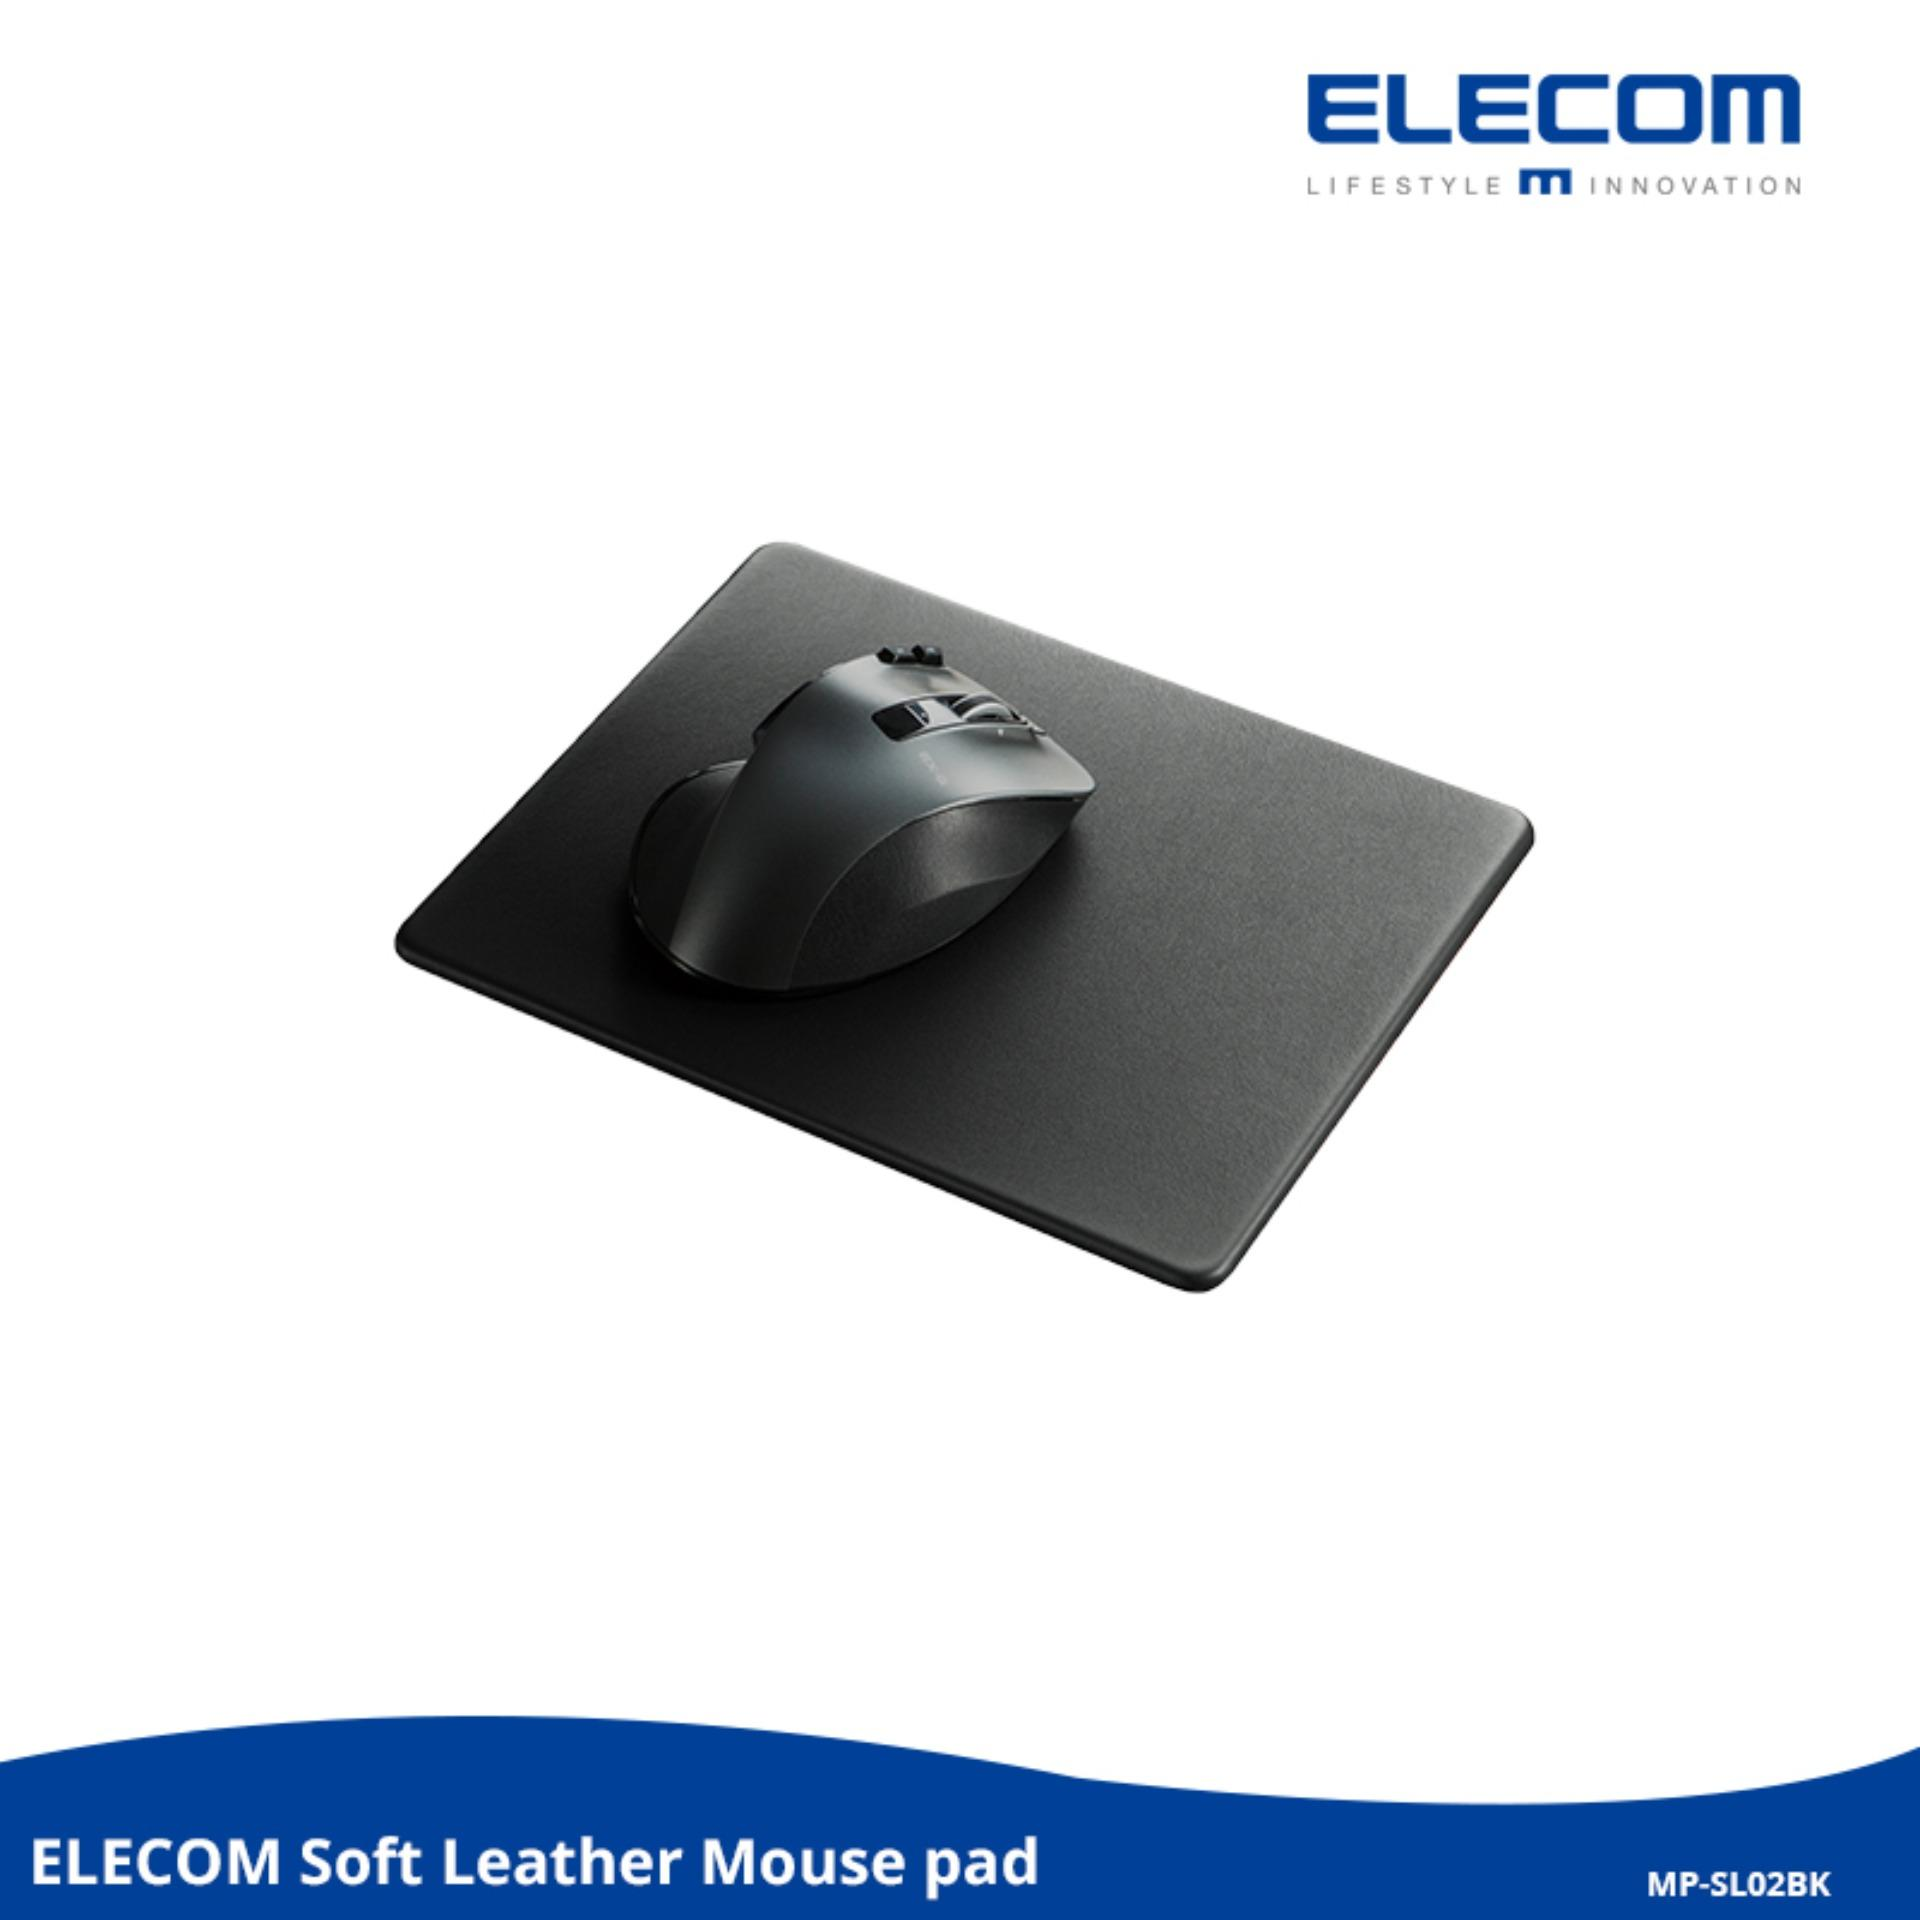 ELECOM / Soft Leather Mouse Pad / Leather-Like Texture / Smooth Surface / Large size/ 18cm x 23cm / Japan Brand / Gorgeous / Office / Casual / MP-SL02